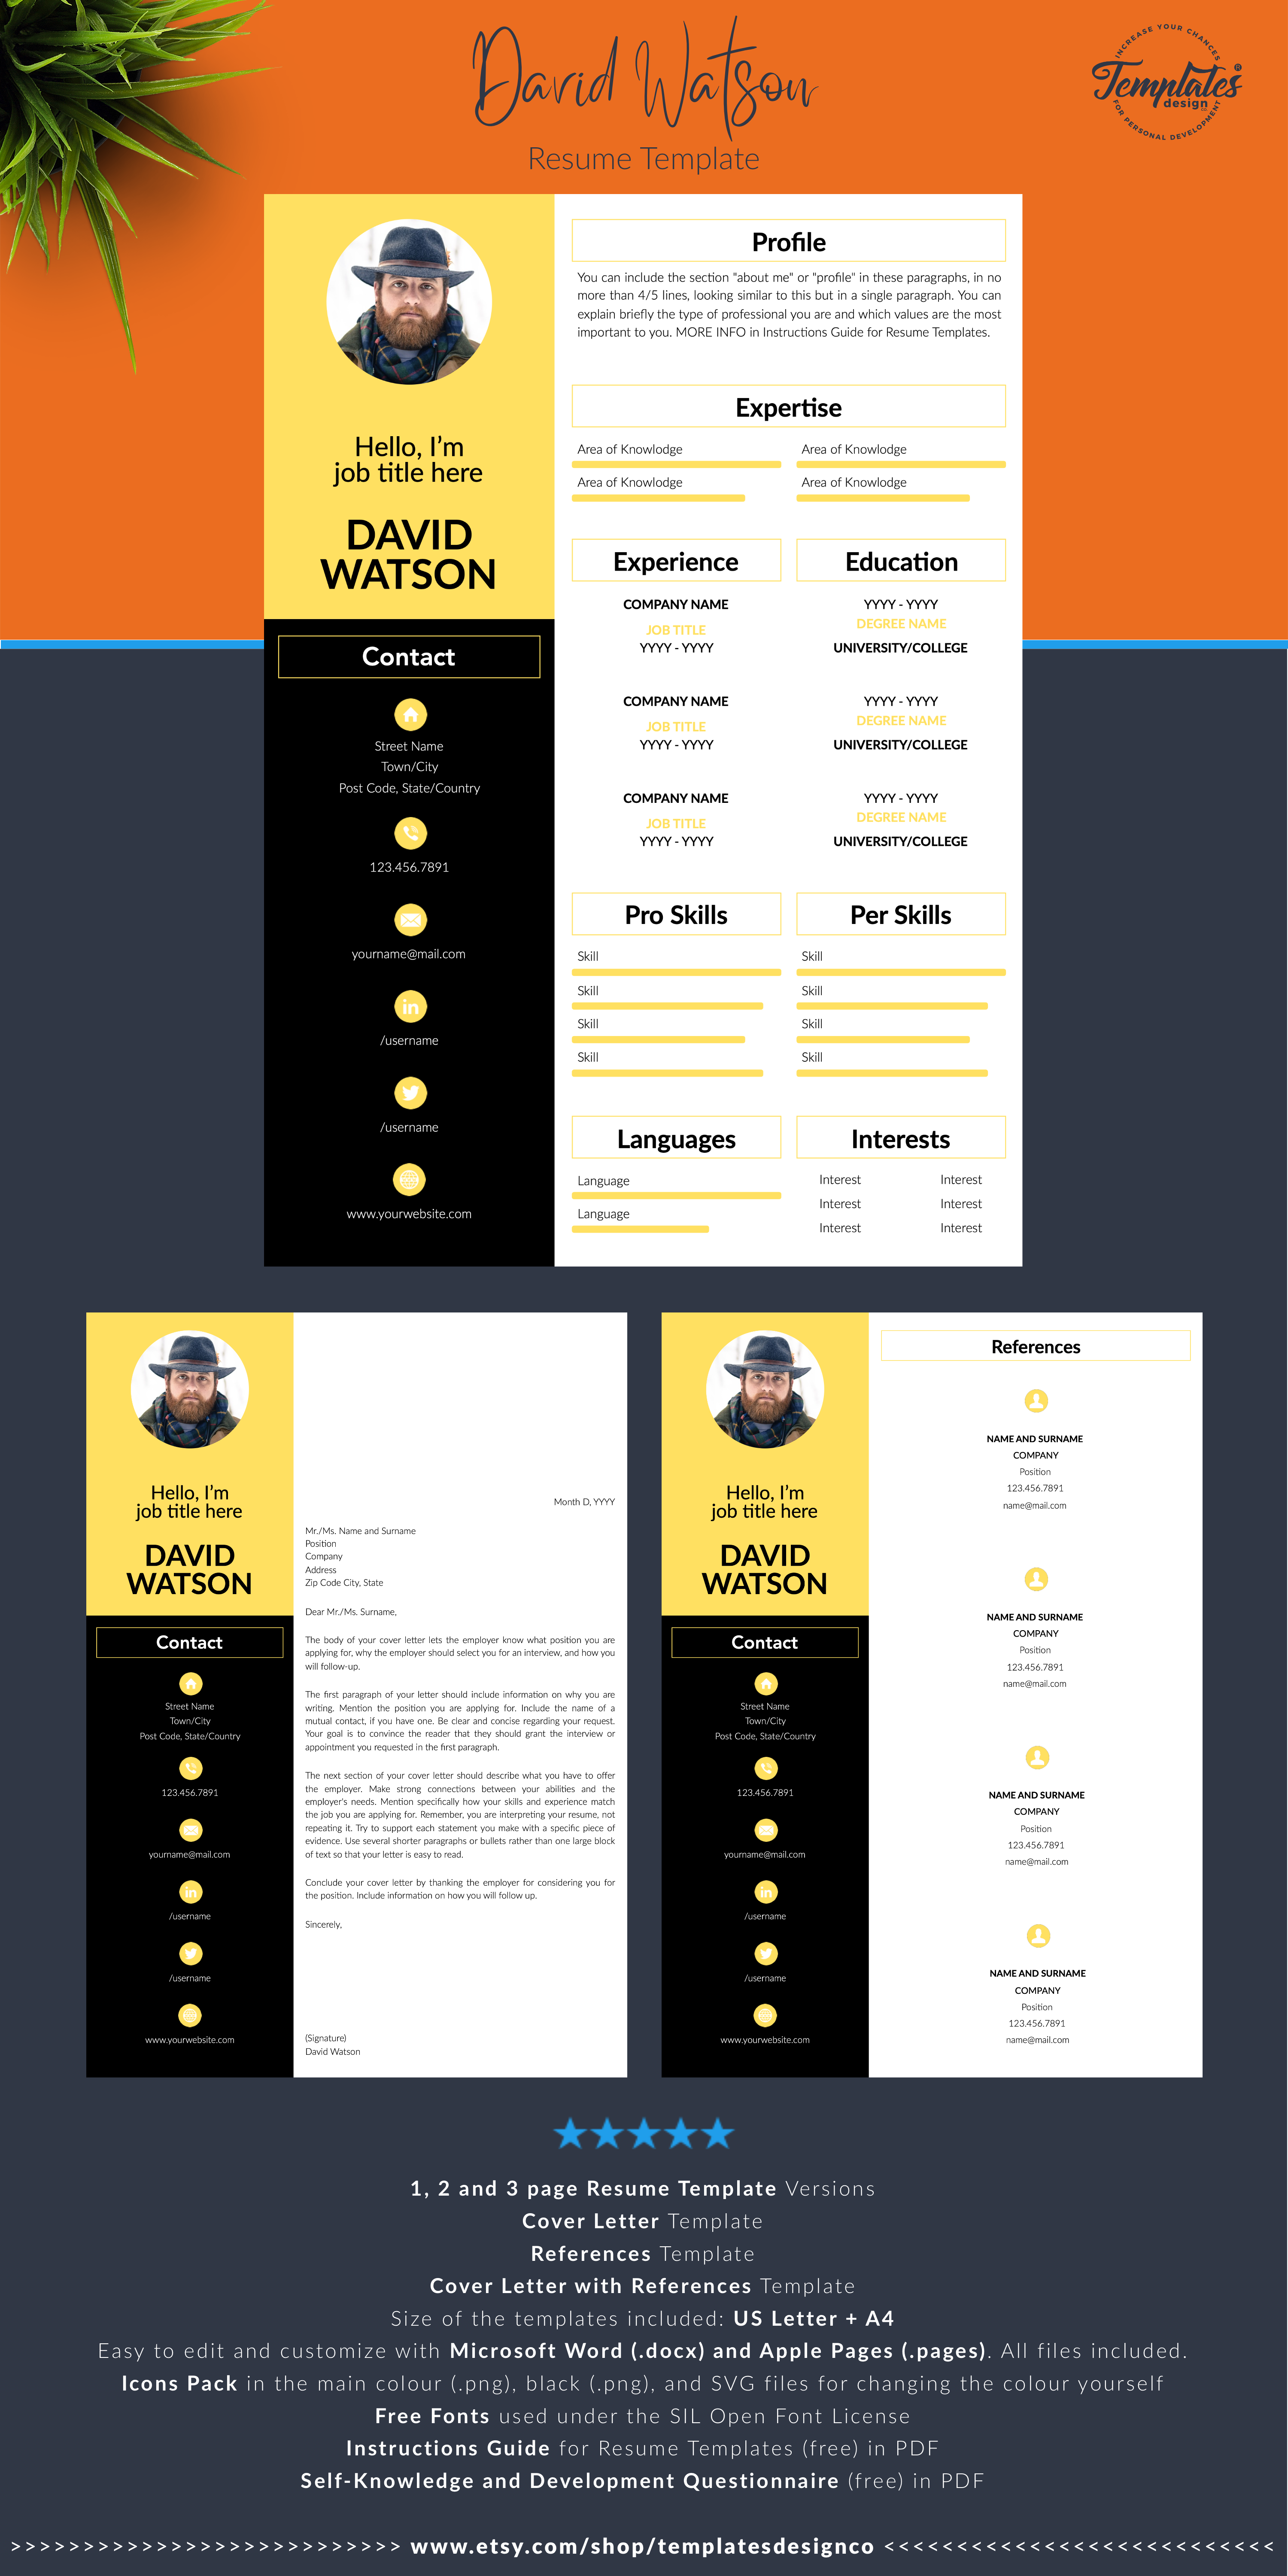 Cv Template Professional Resume Template With Photo Resume Instant Download Creative Cv For Word And Pages Cover Letter References Resume Template Cv Template Cv Template Professional